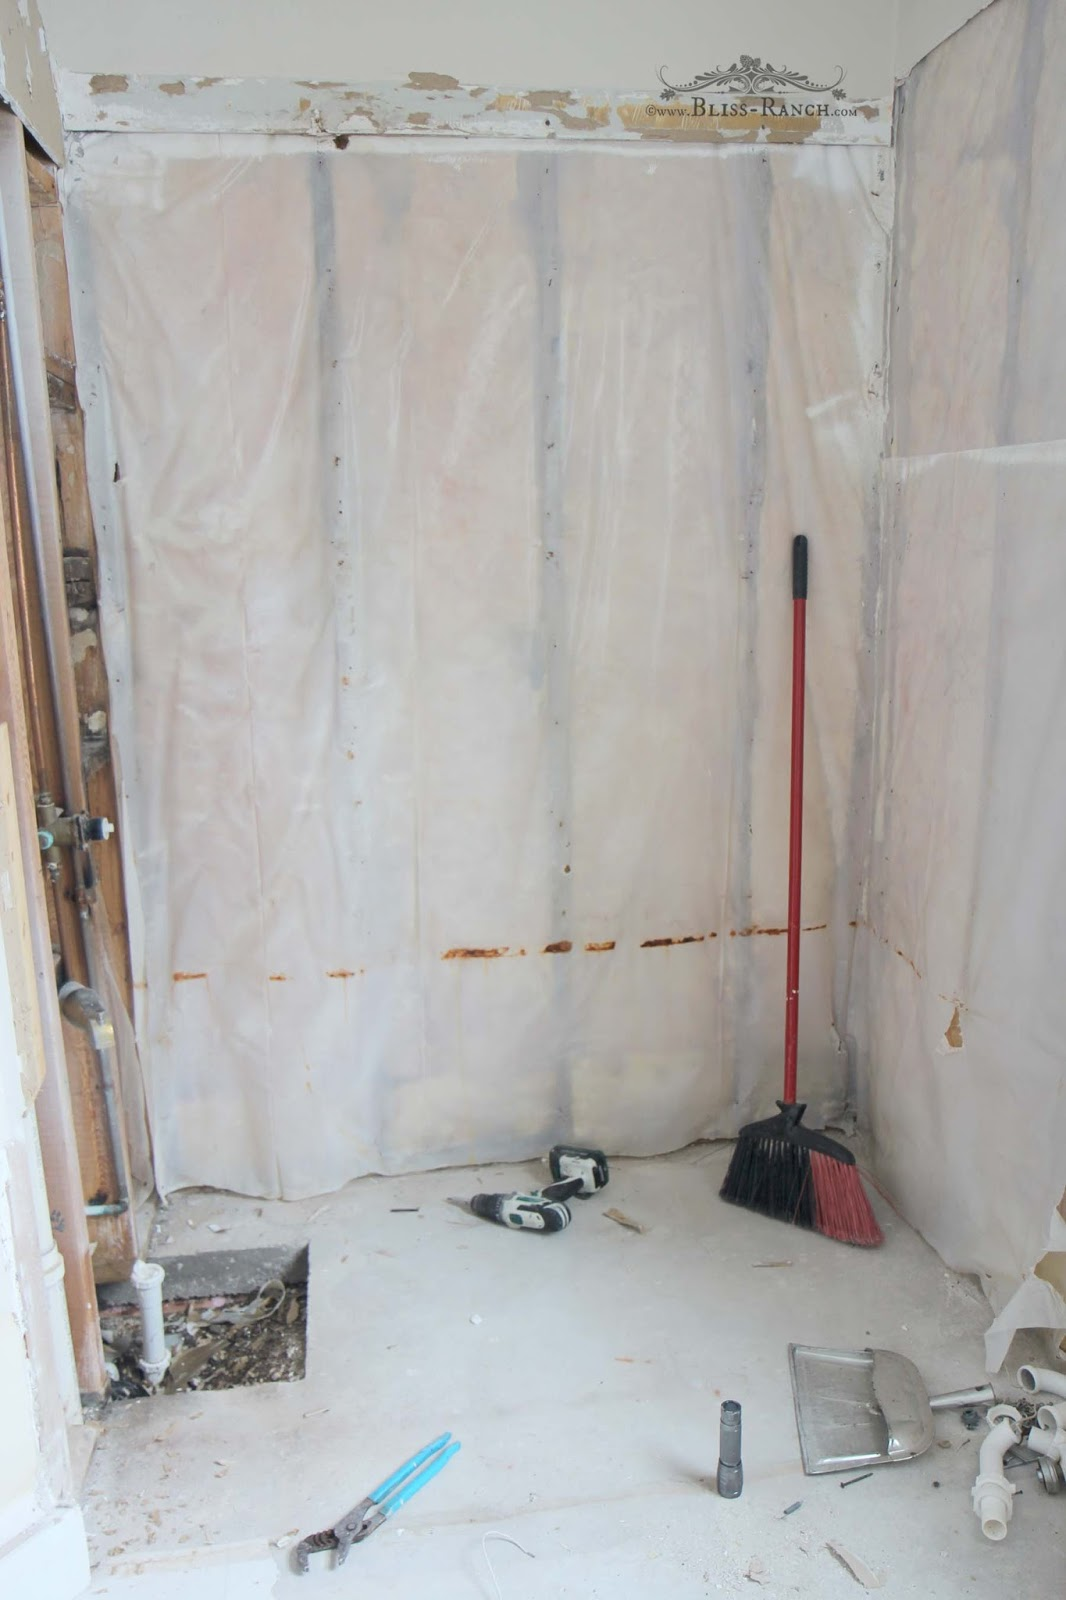 Bliss ranch subway shower tile shower subway tile smoke glossy 3x6 south cypress bliss ranch dailygadgetfo Image collections